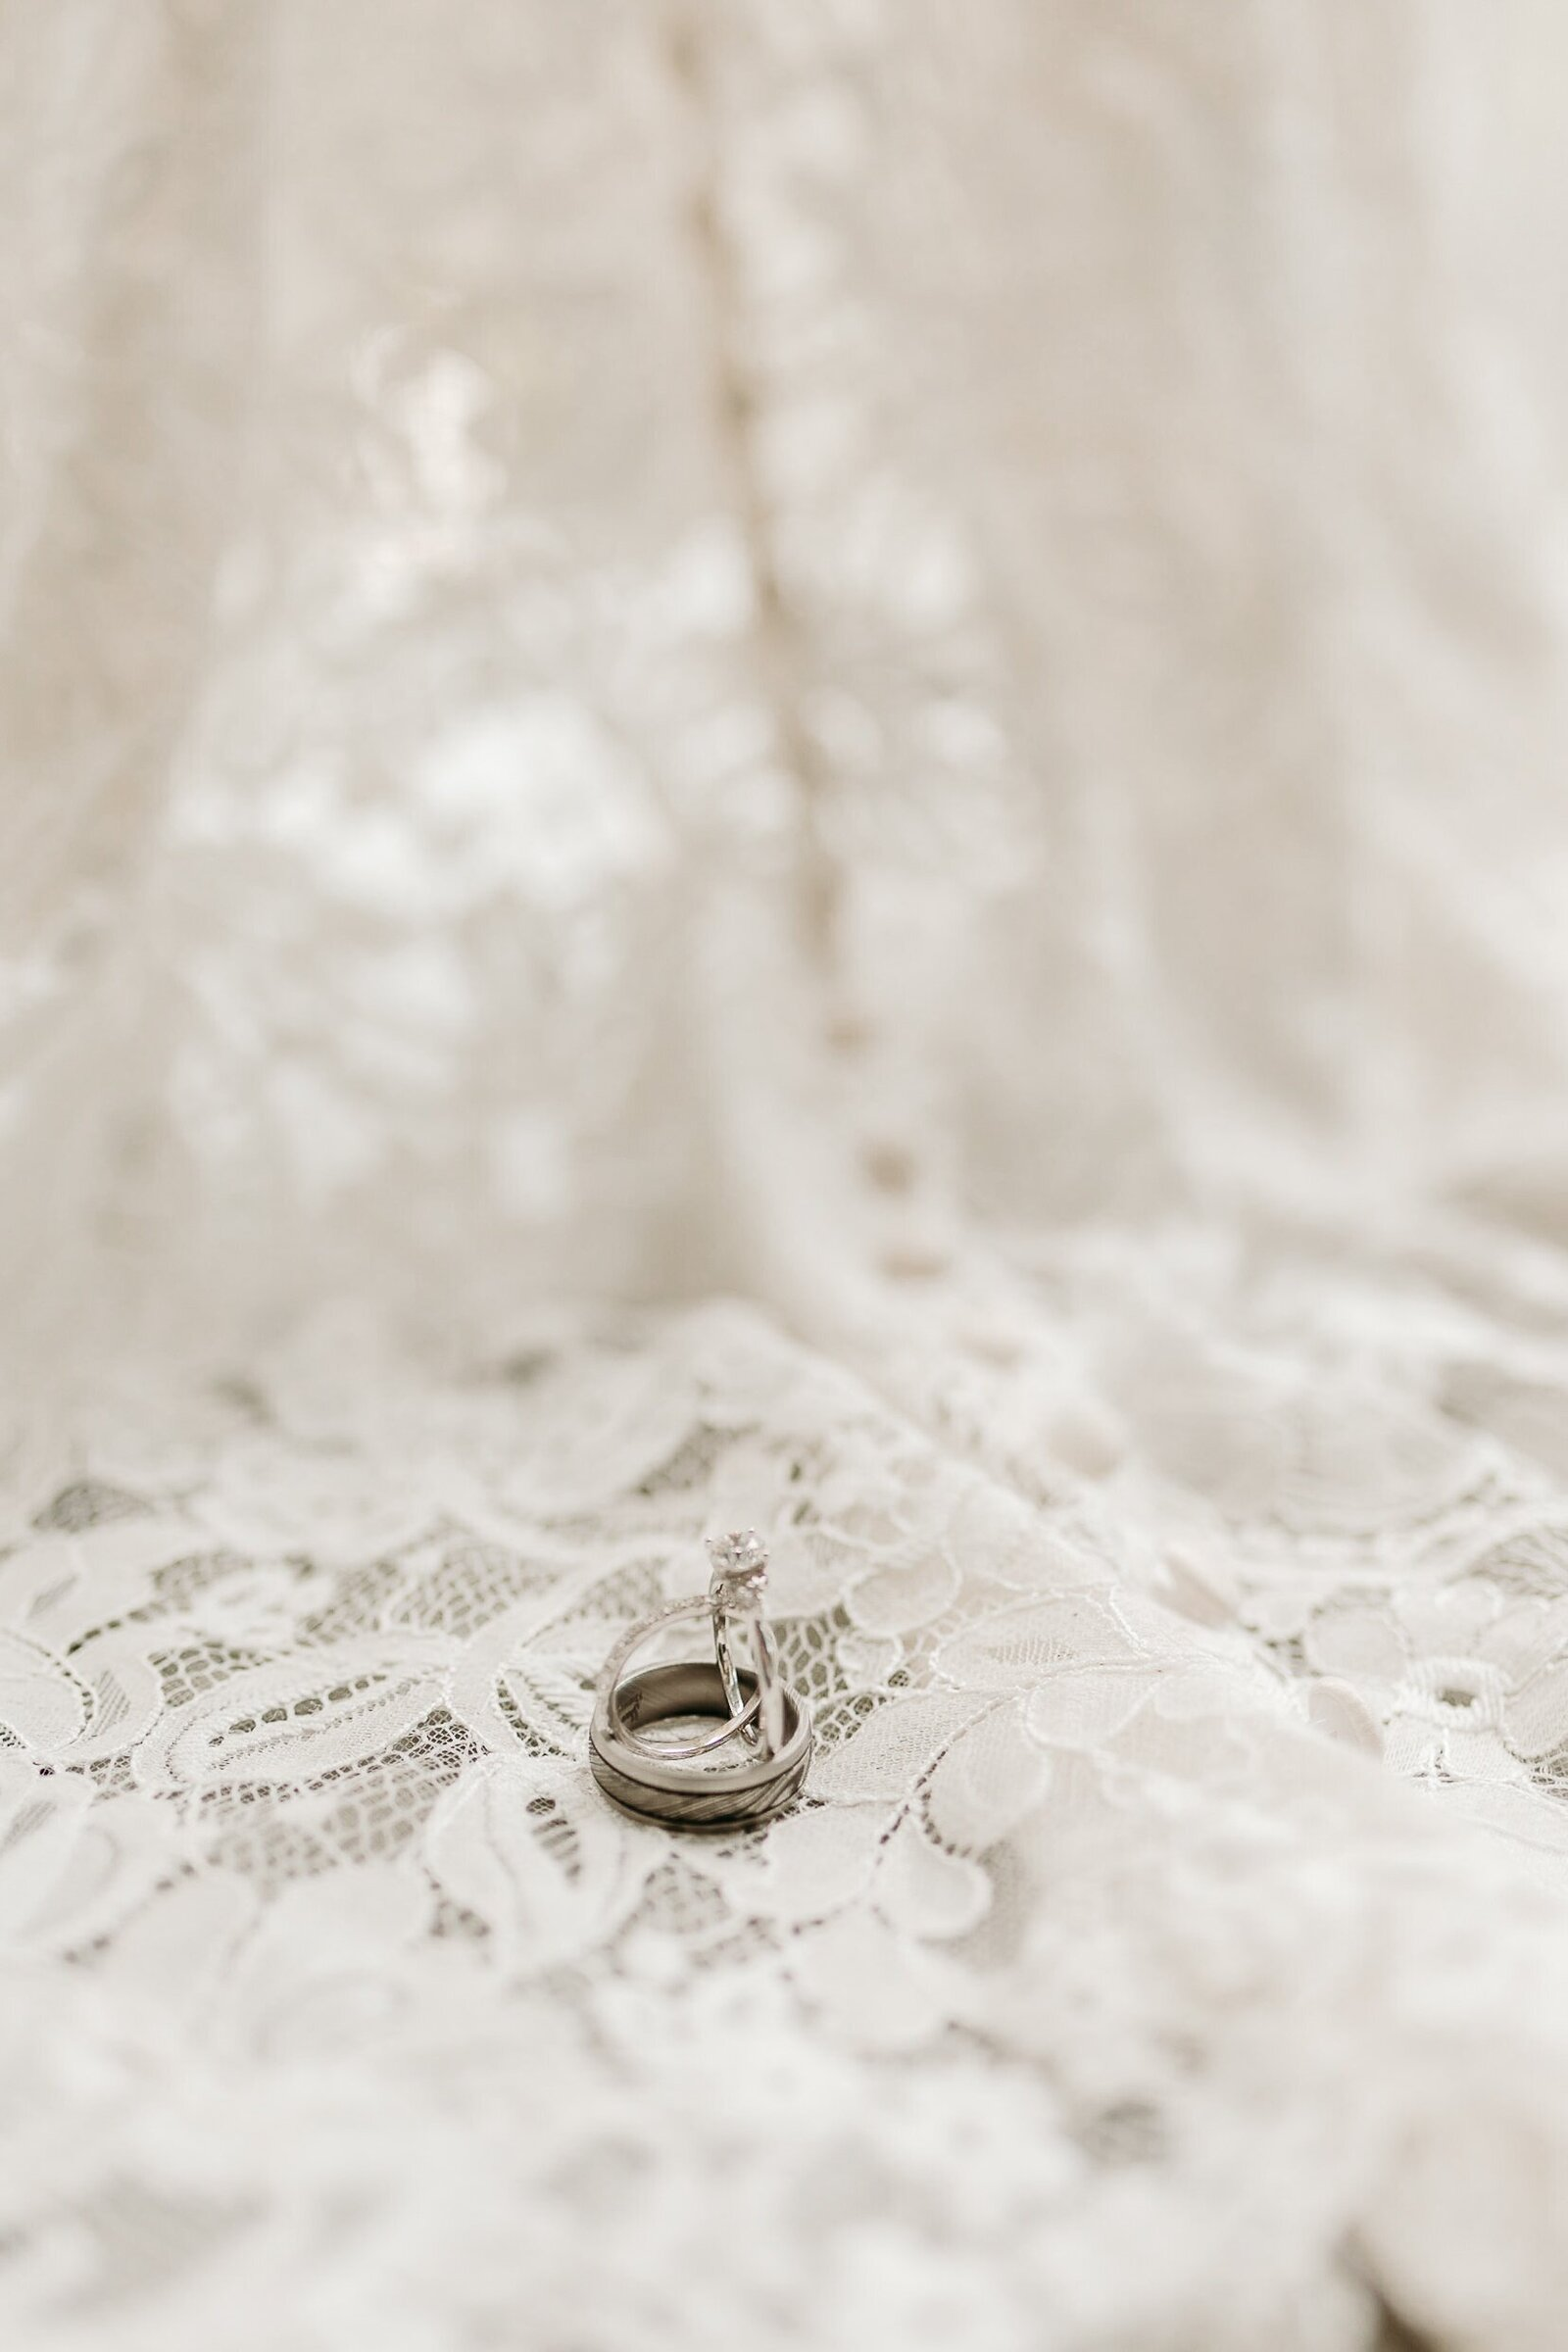 J.Michelle Photography photographs ring detail